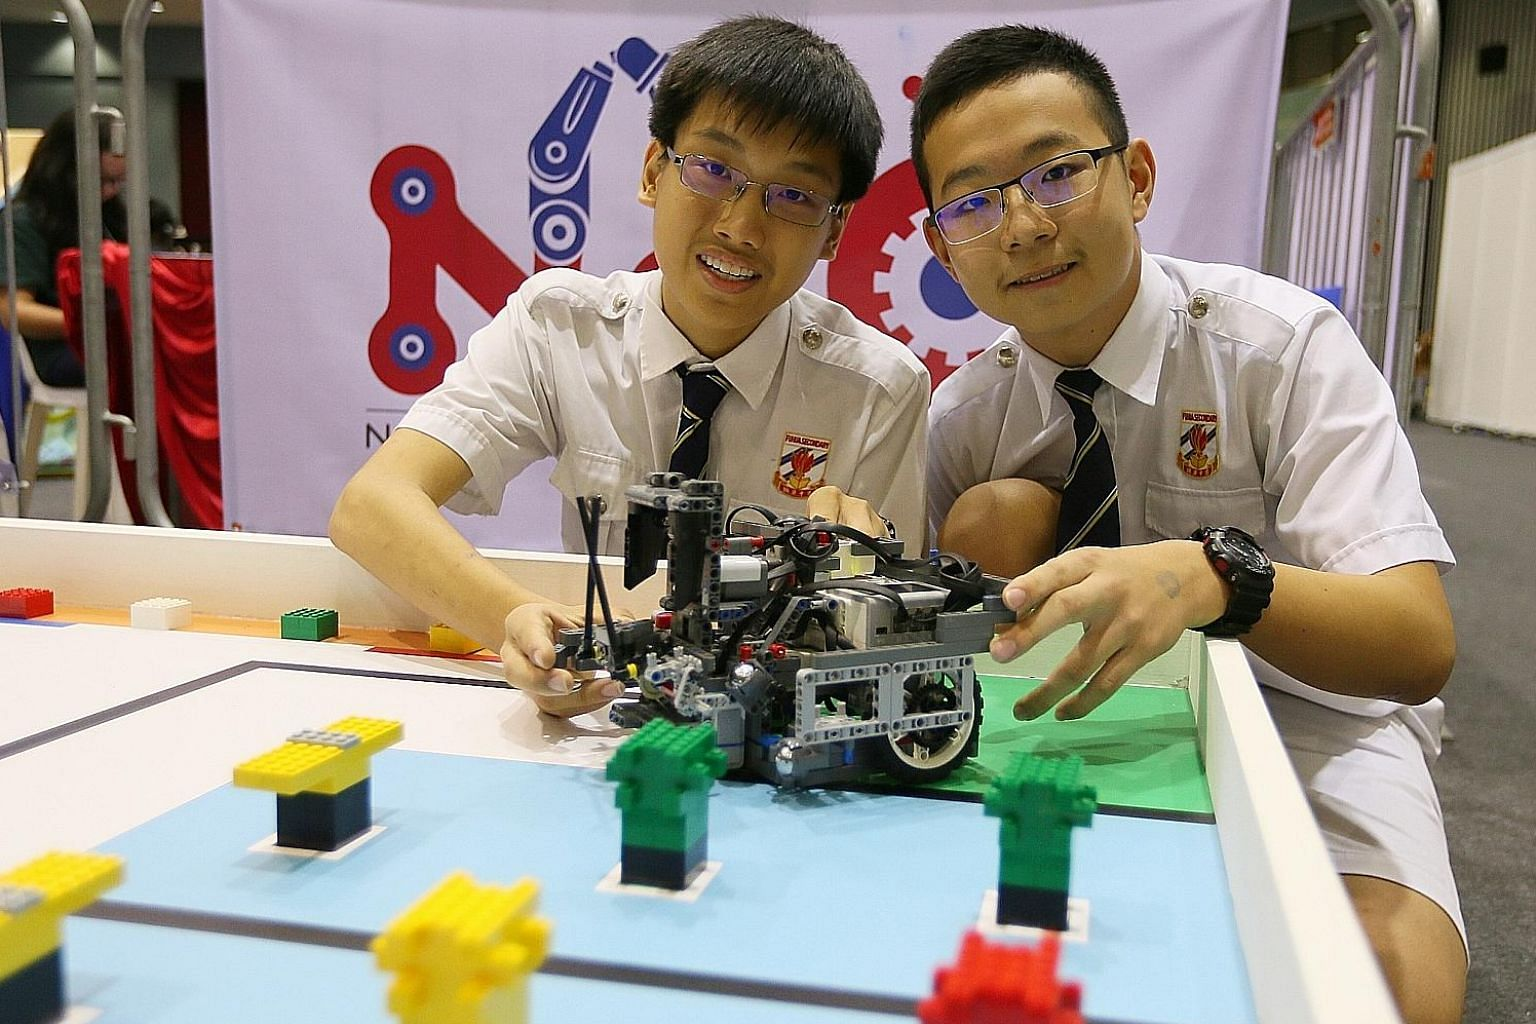 Dong Ruidi (far right) and Ng Chee Fong spent about 20 hours a week over the last few months to come up with their winning robot.